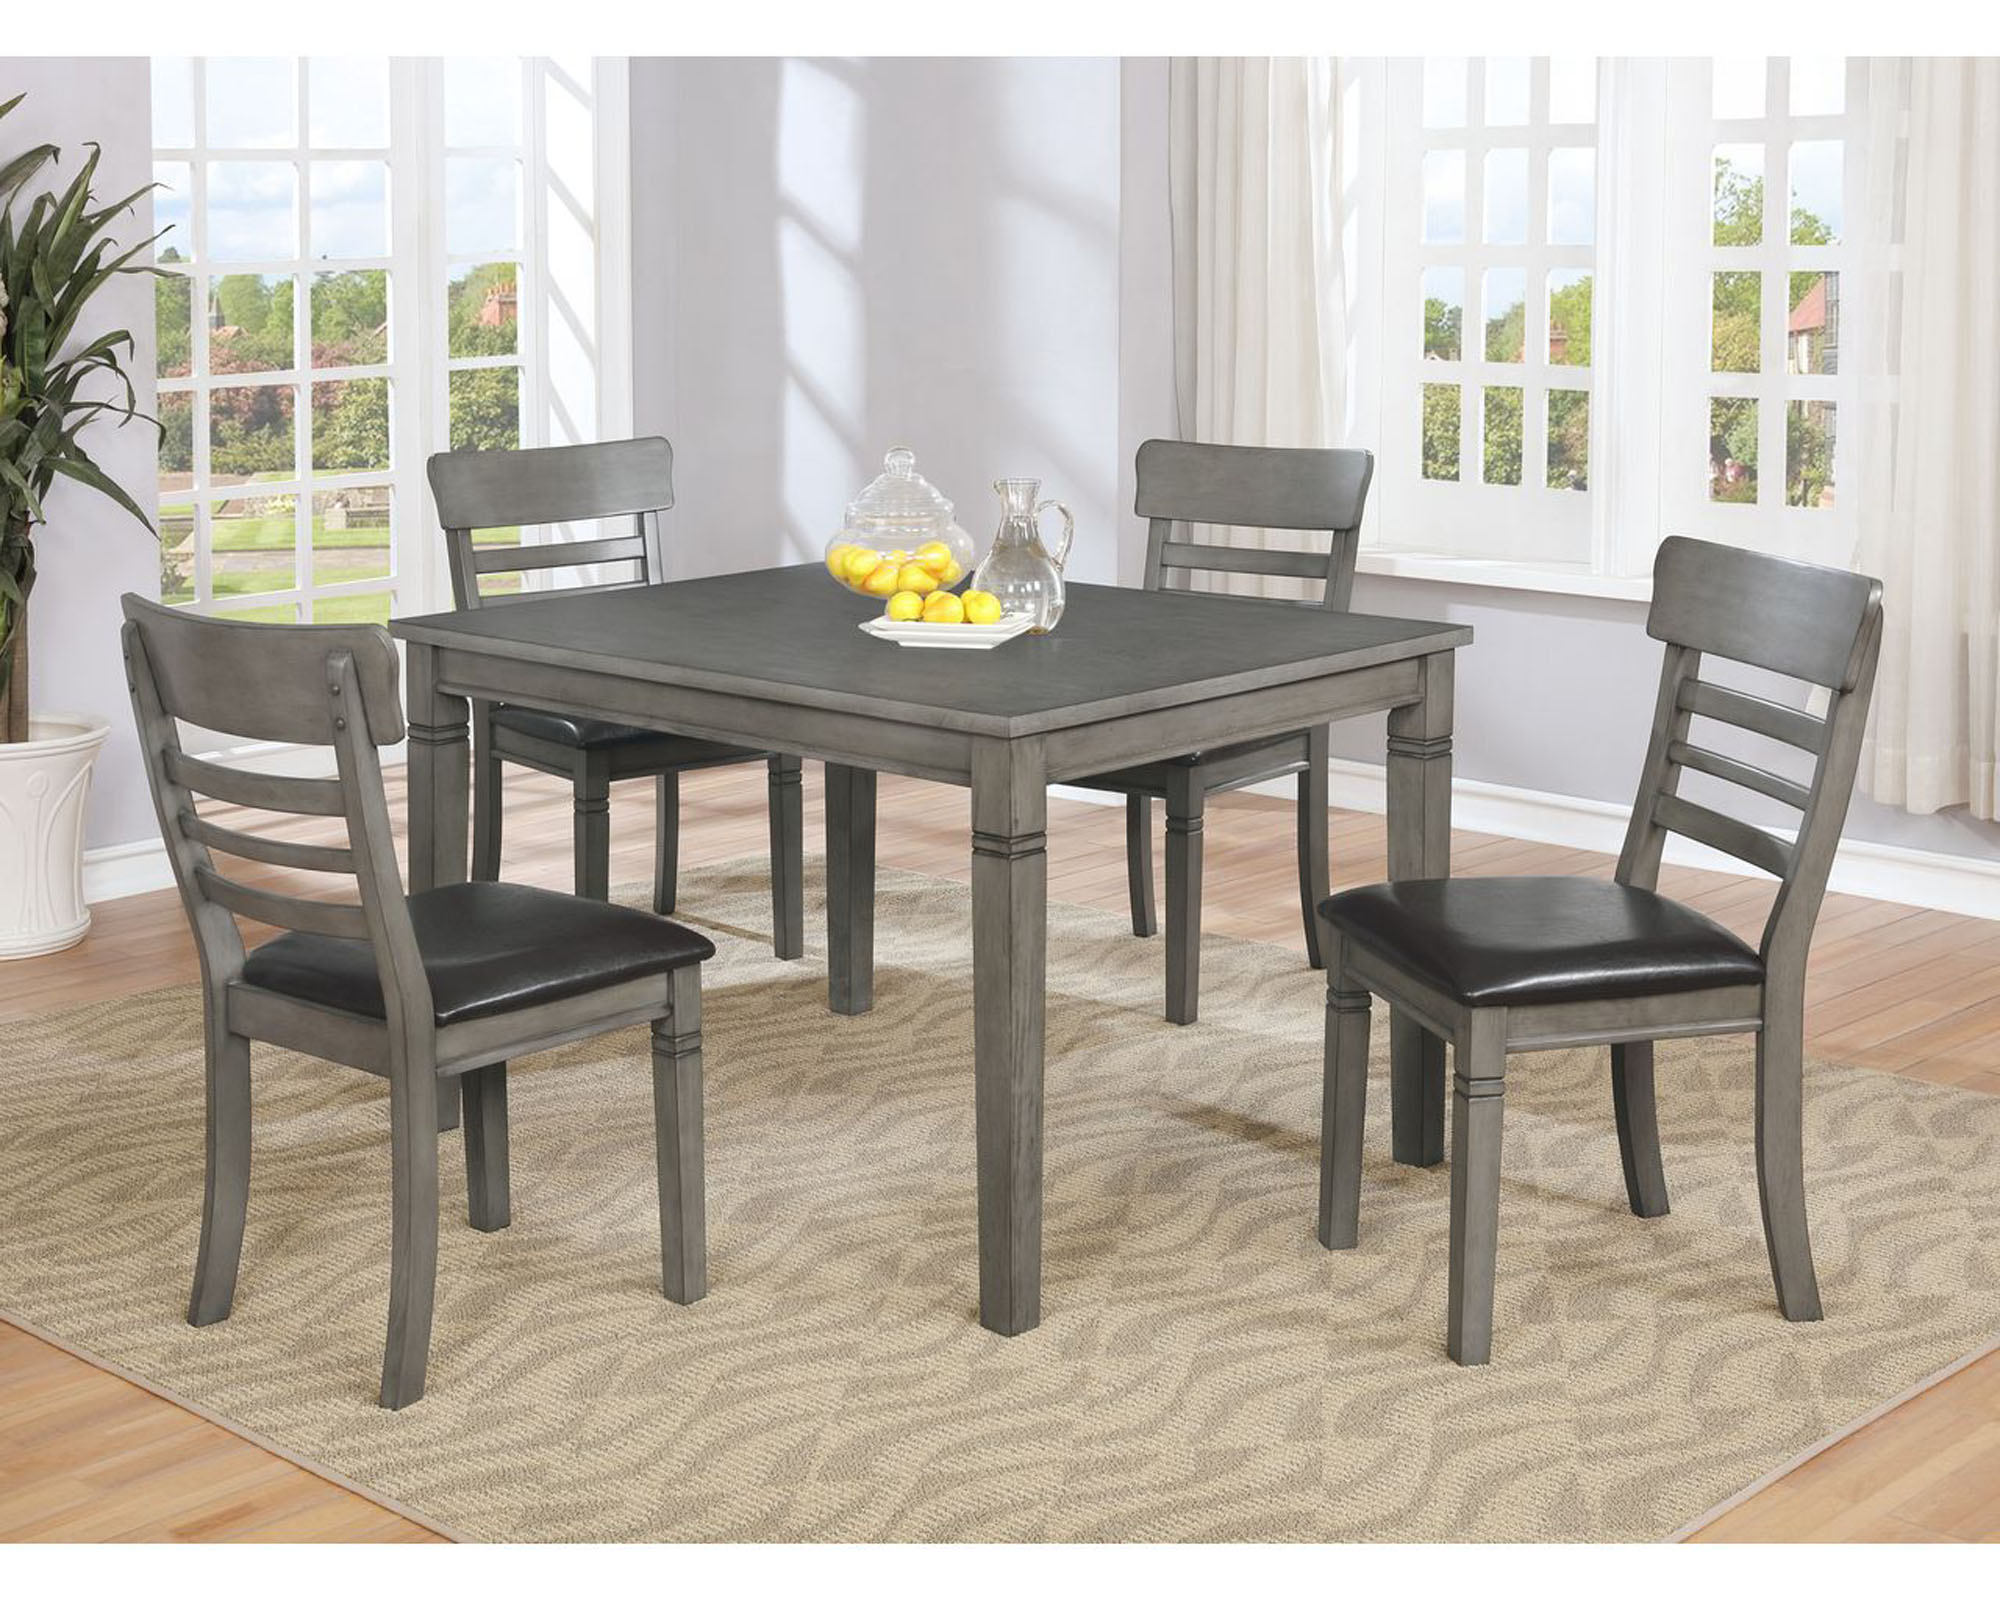 1744 Parker Grey 5pc Dining Set $479.99